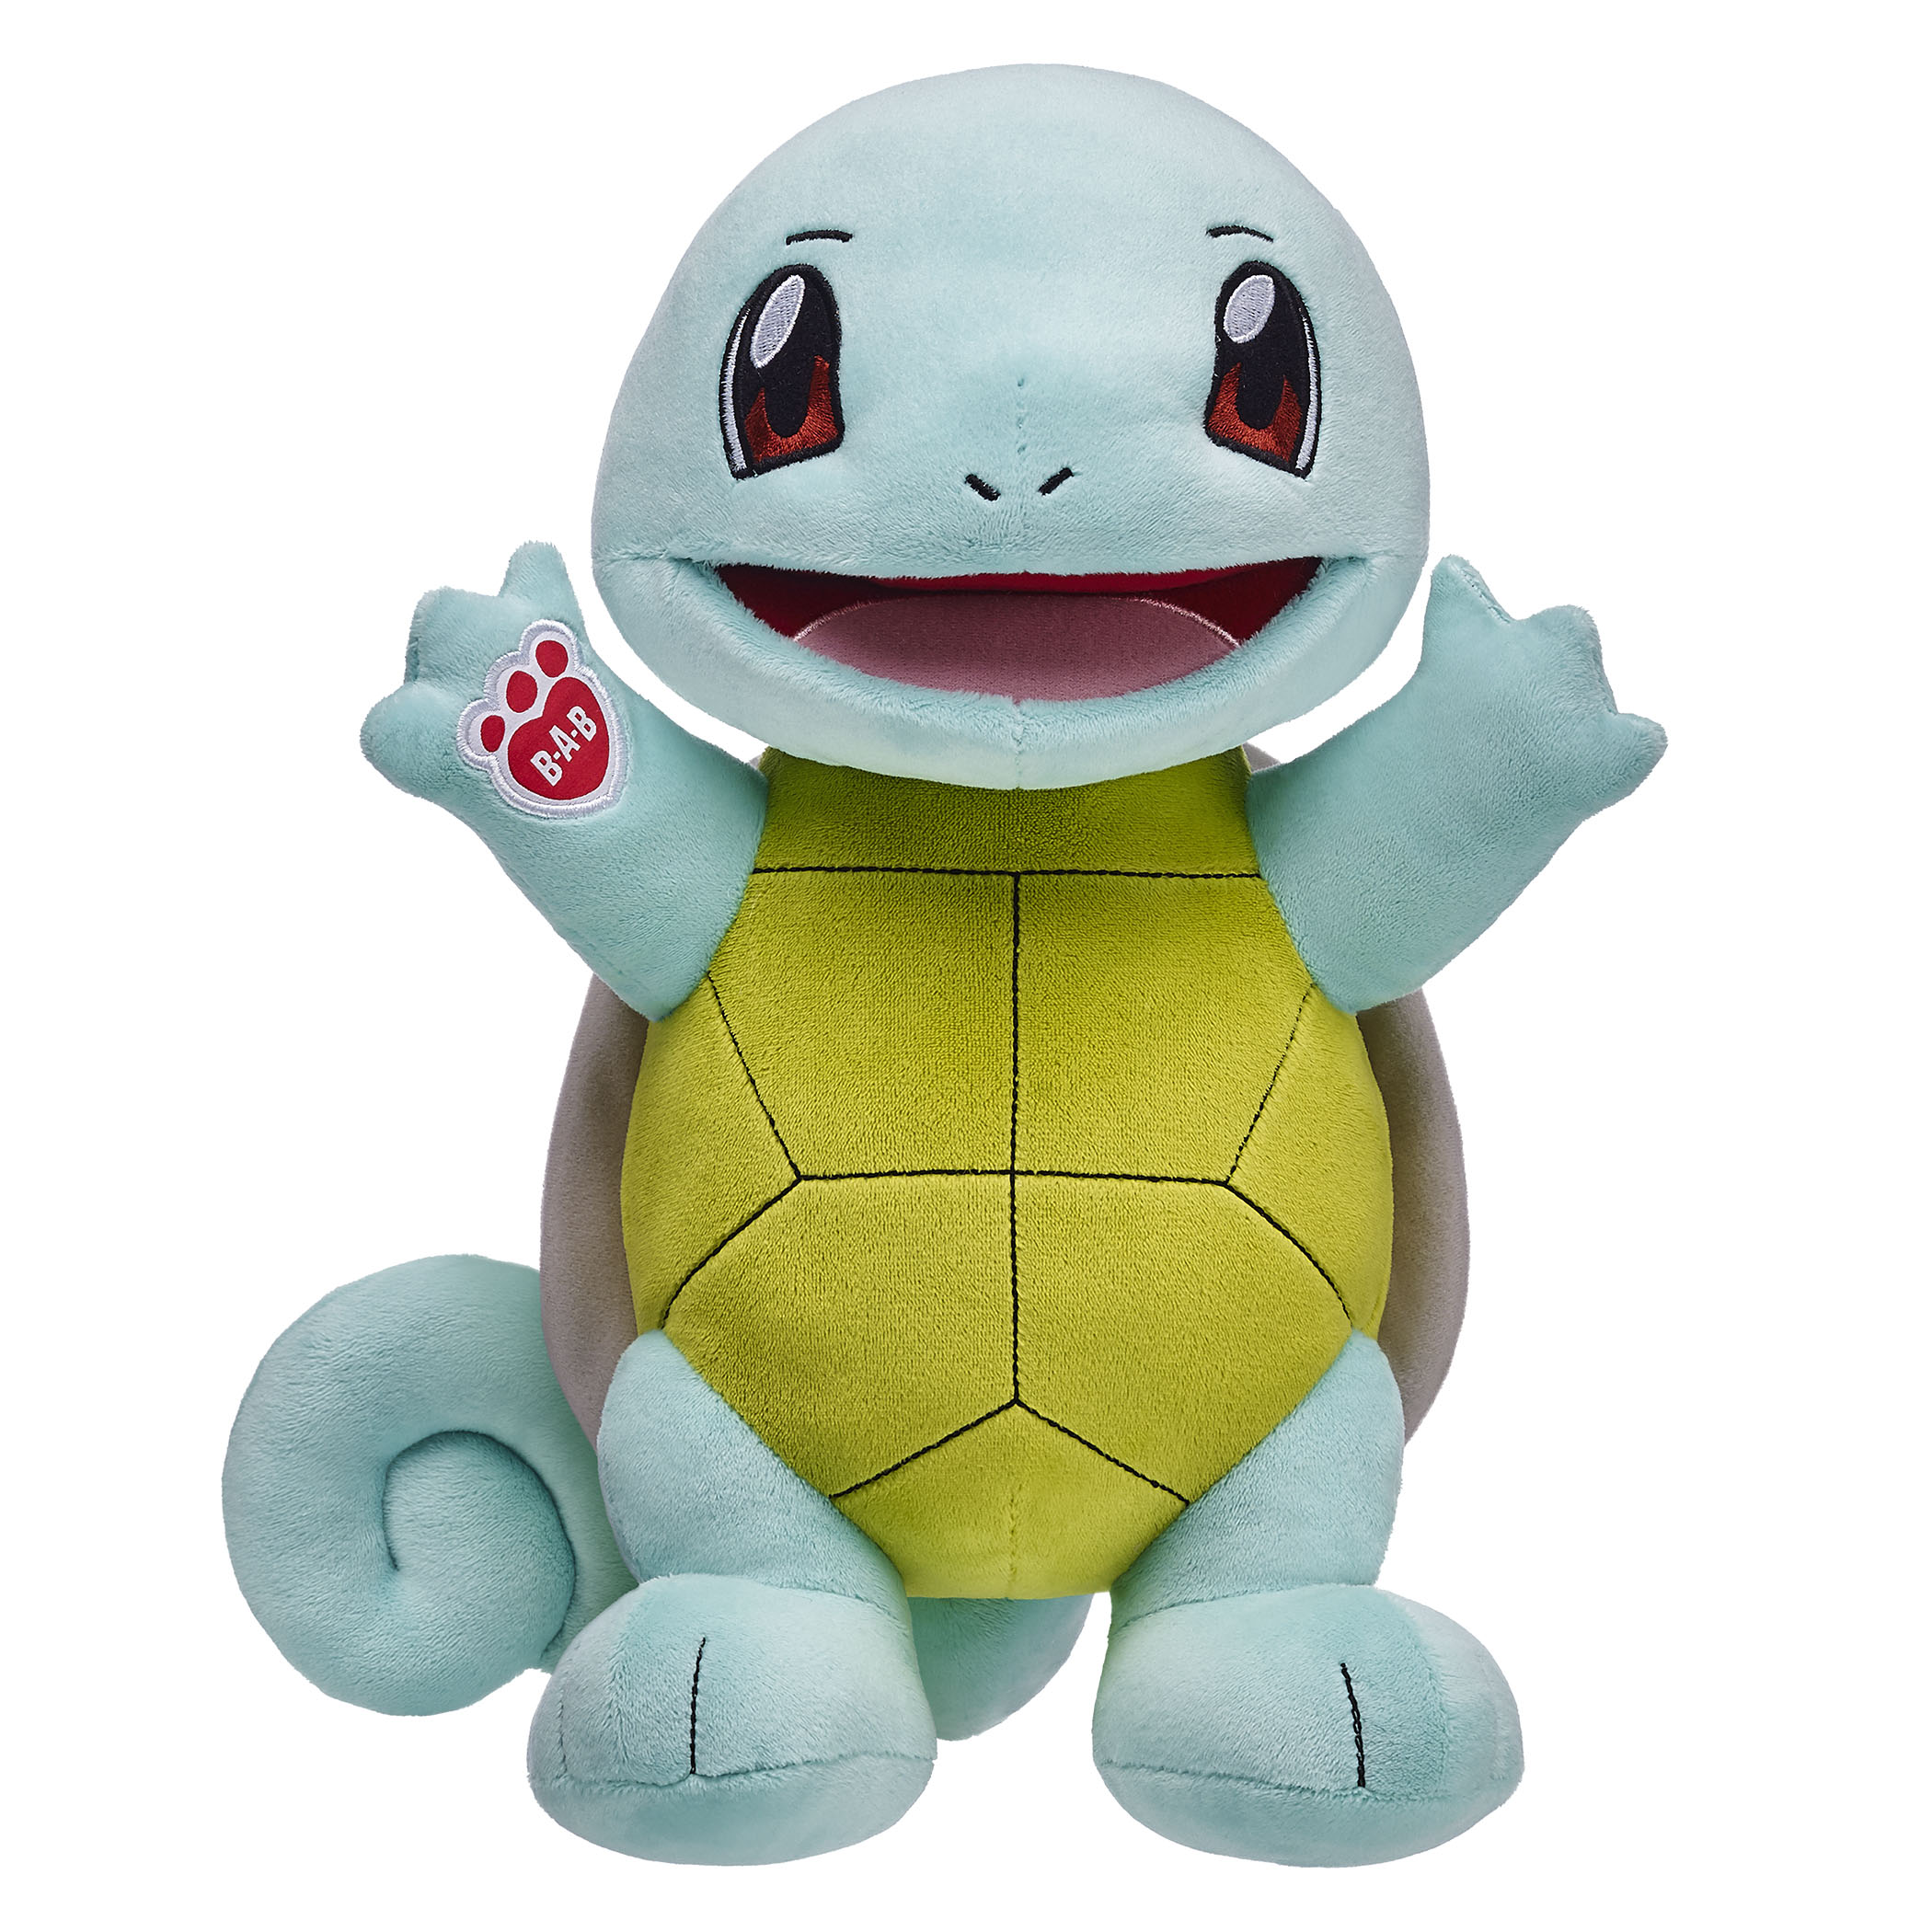 ffb49f0aa4b Squirtle is the next Pokémon headed to Build-A-Bear Workshop - Polygon